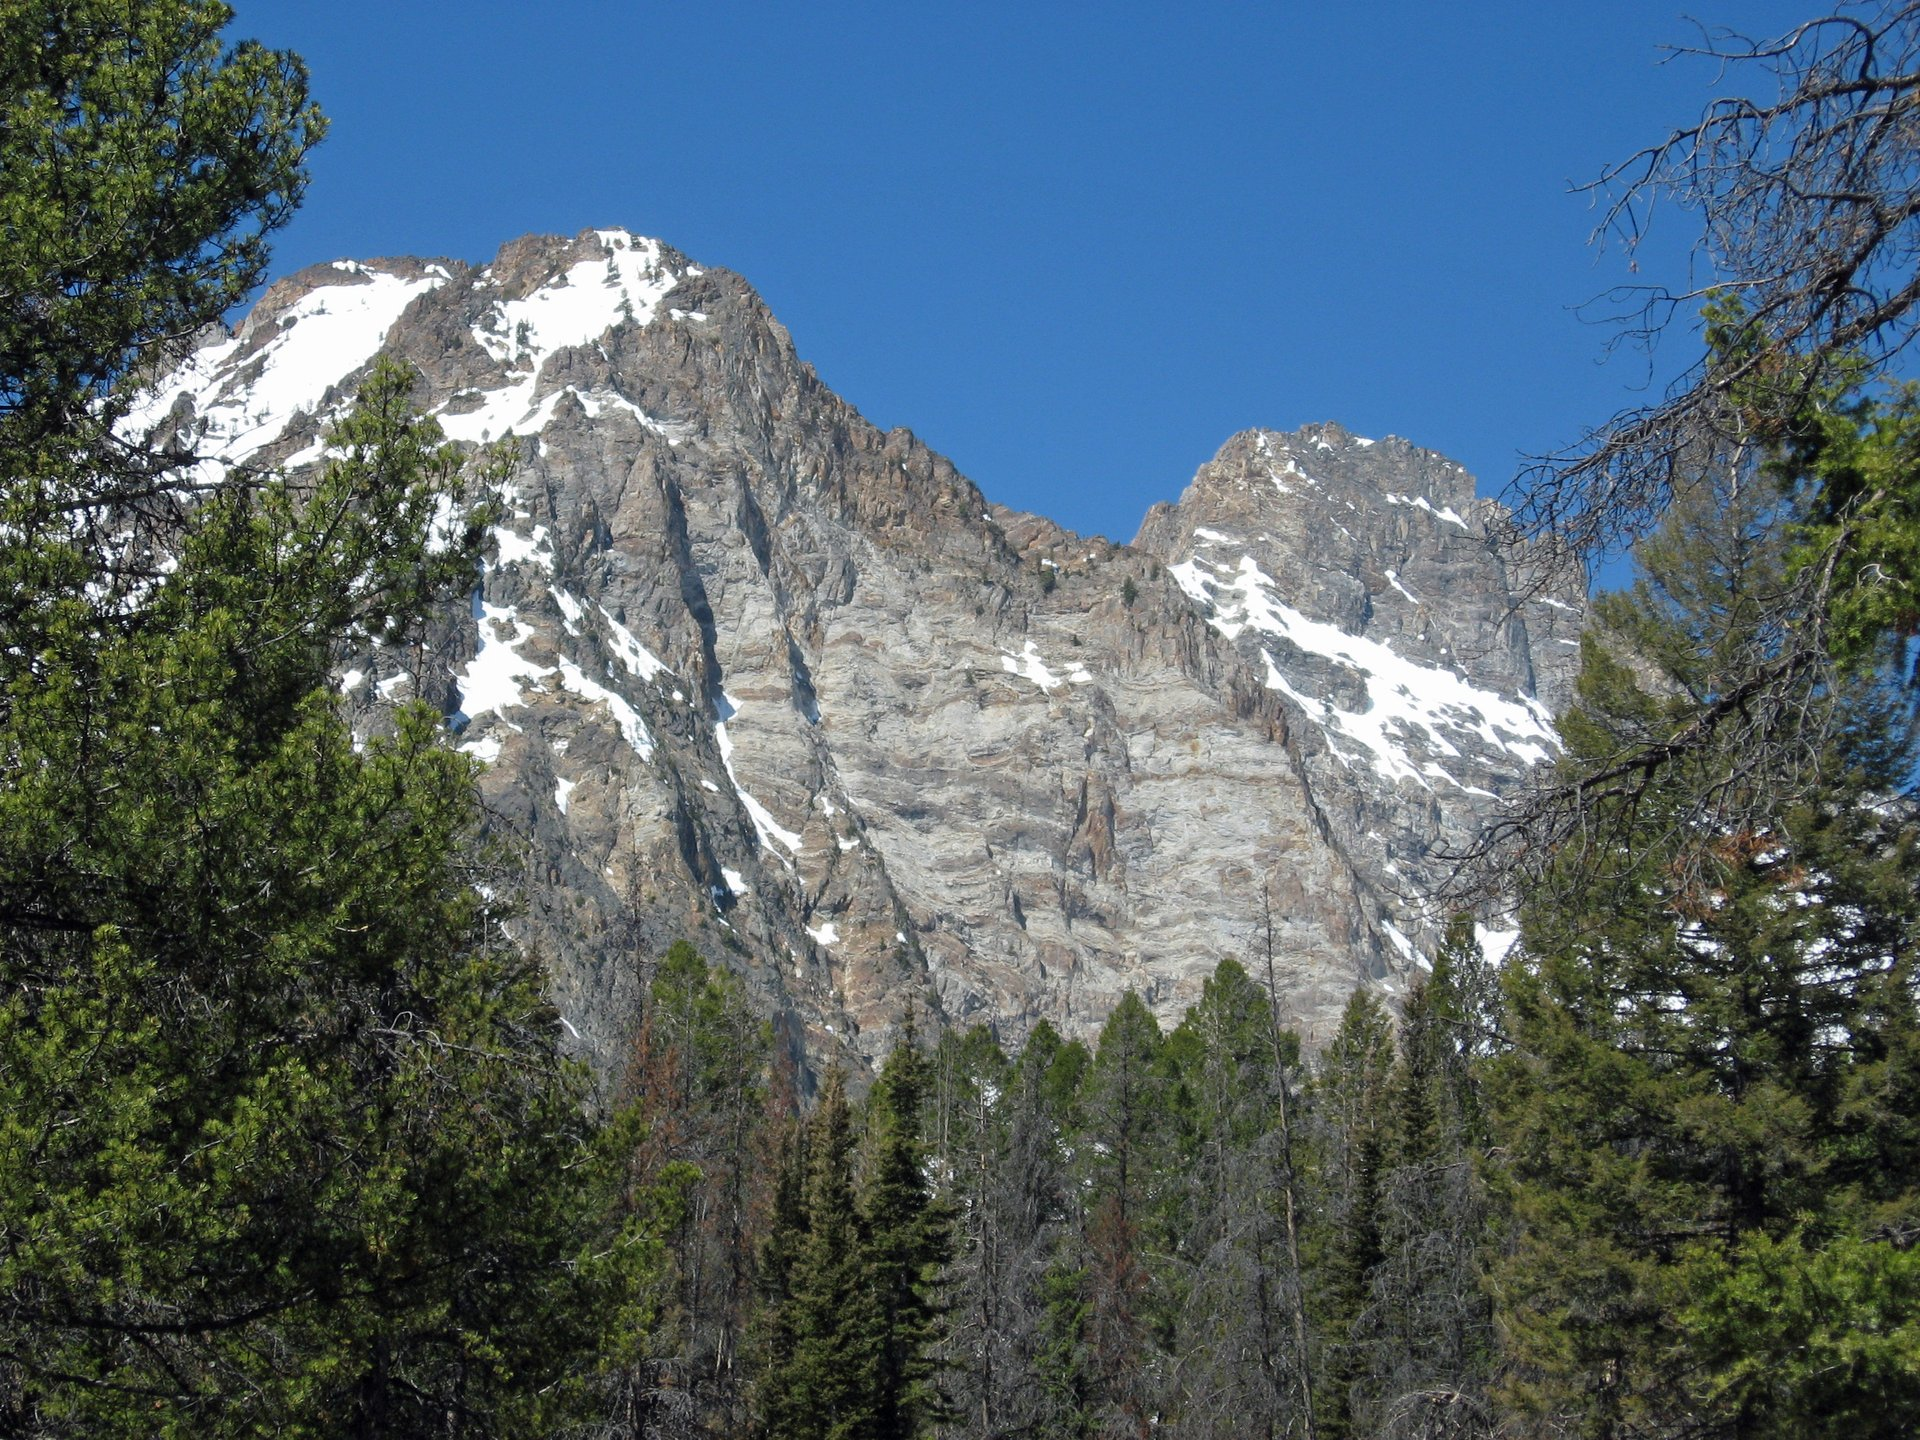 Thompson Peak in Idaho as viewed from the Alpine Way Trail in Sawtooth National Recreation Area in Custer County, Idaho 2020